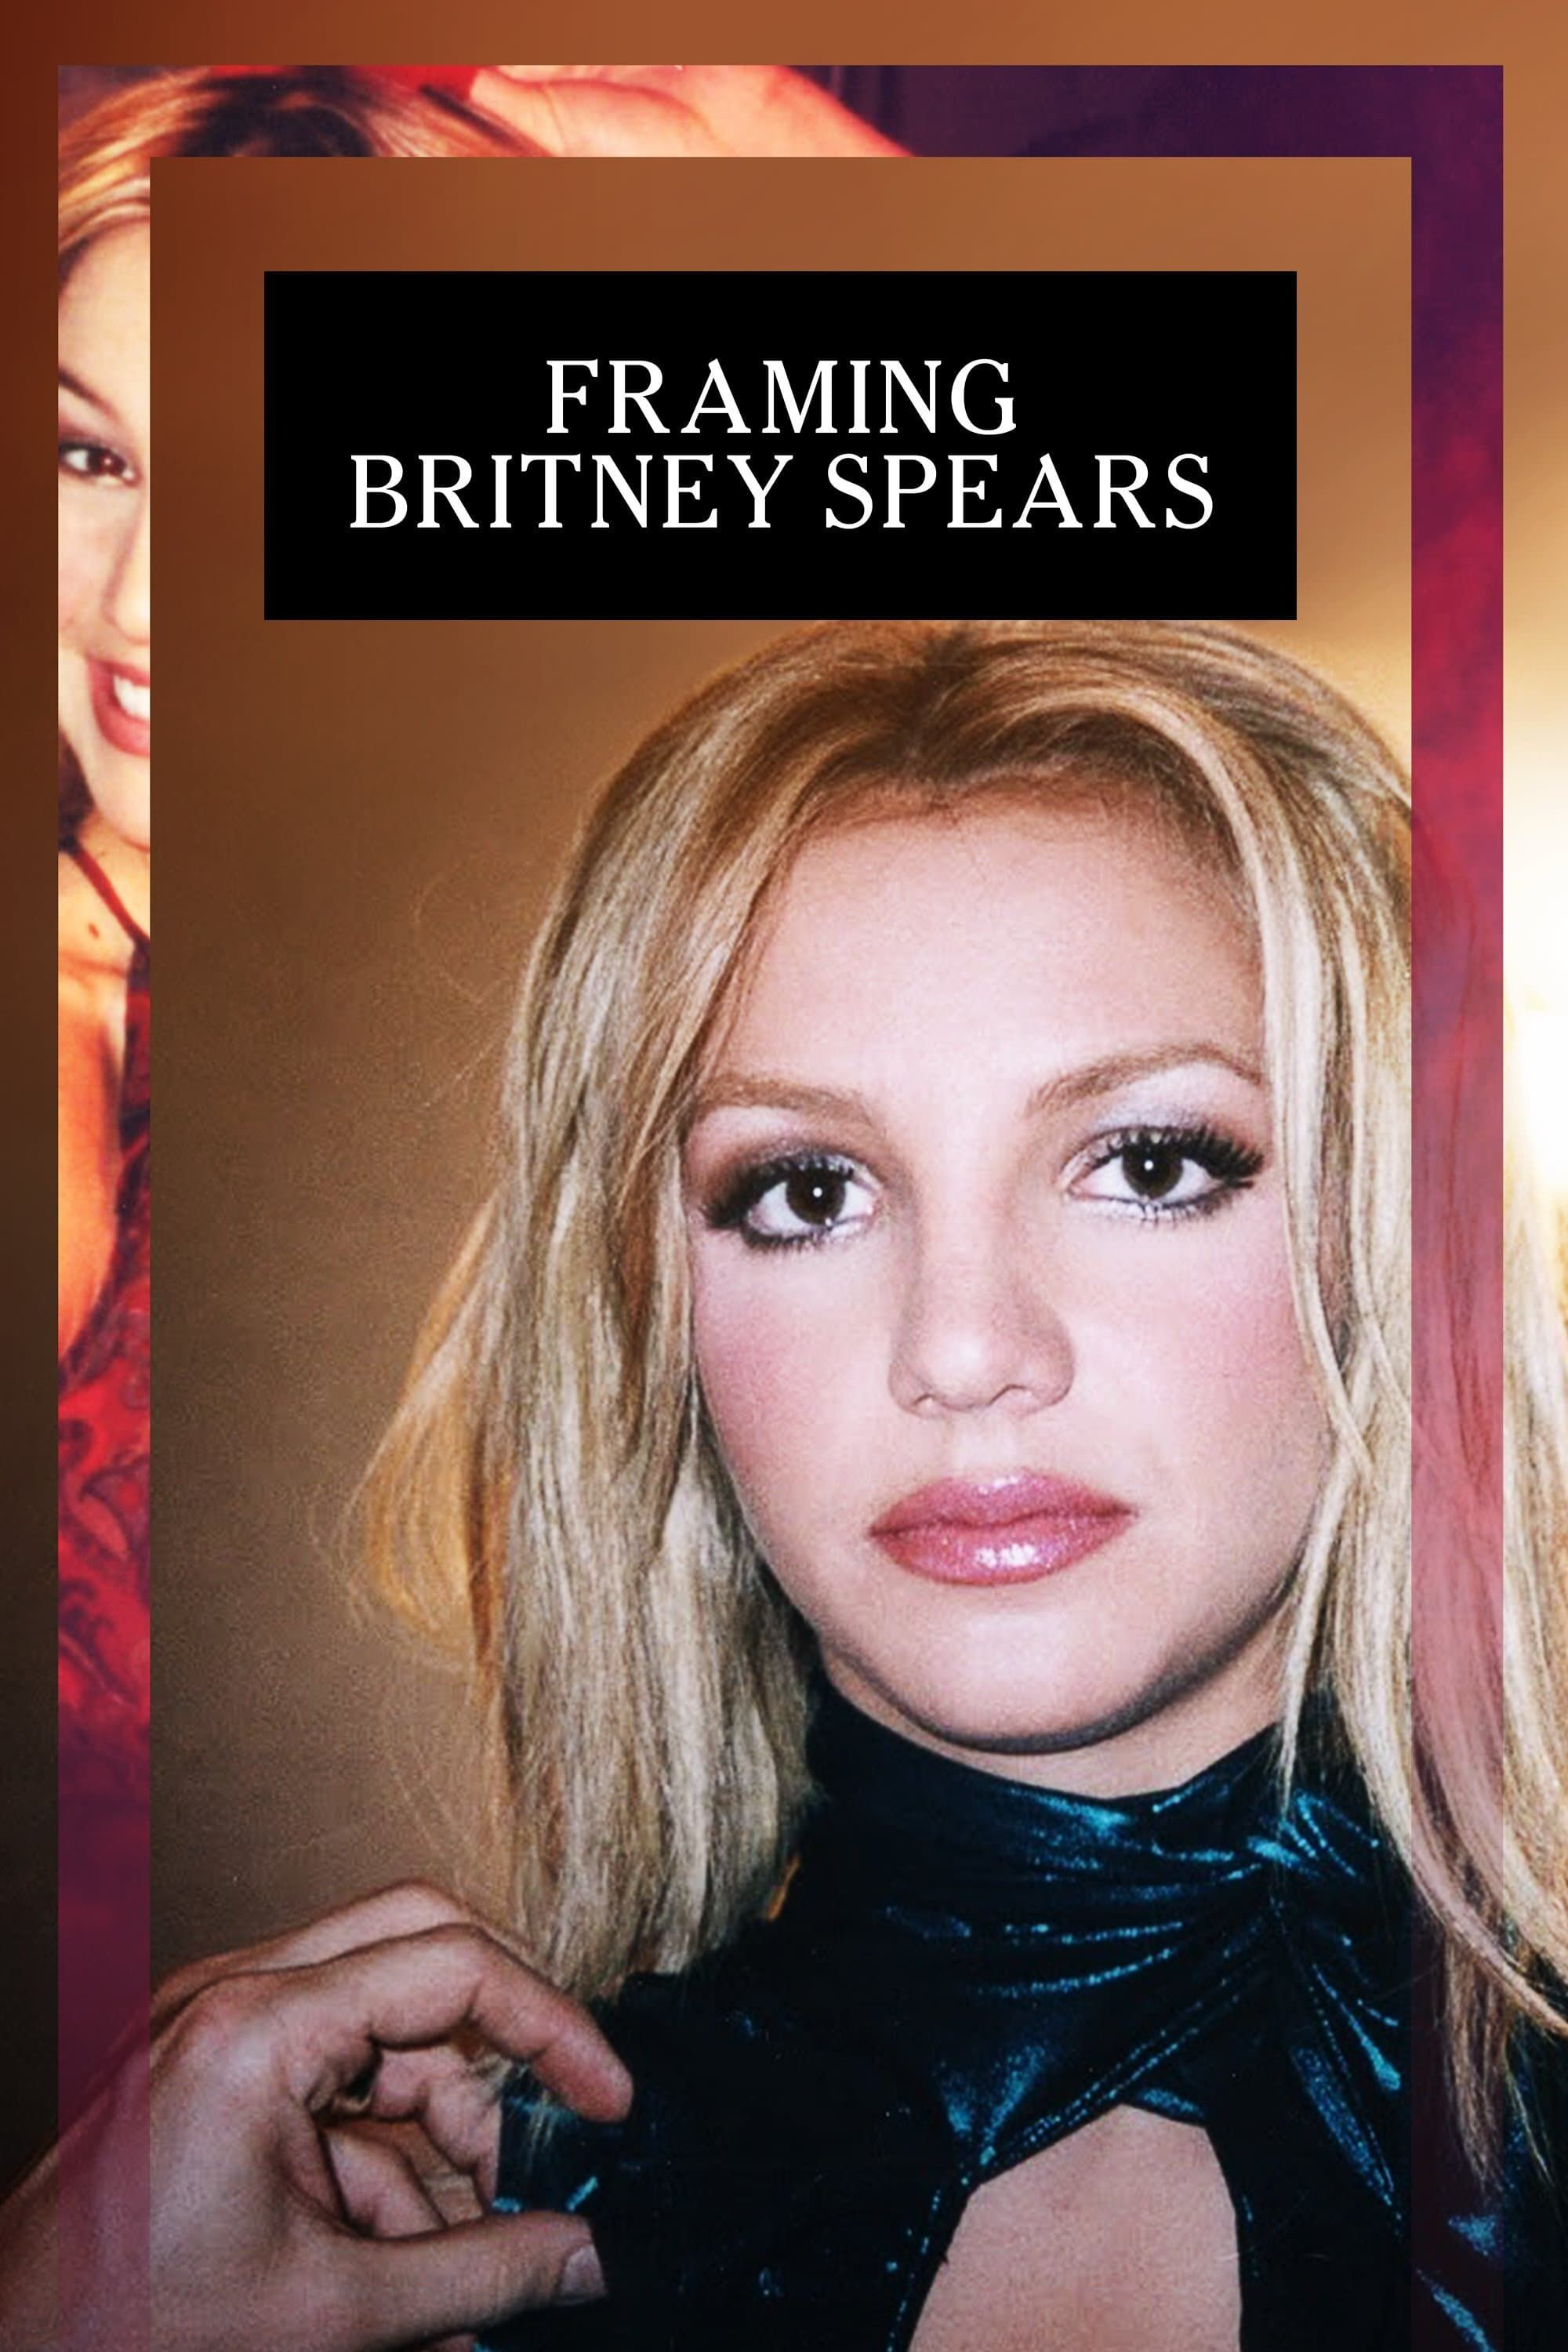 Voir Film Framing Britney Spears - Documentaire (2021) streaming VF gratuit complet